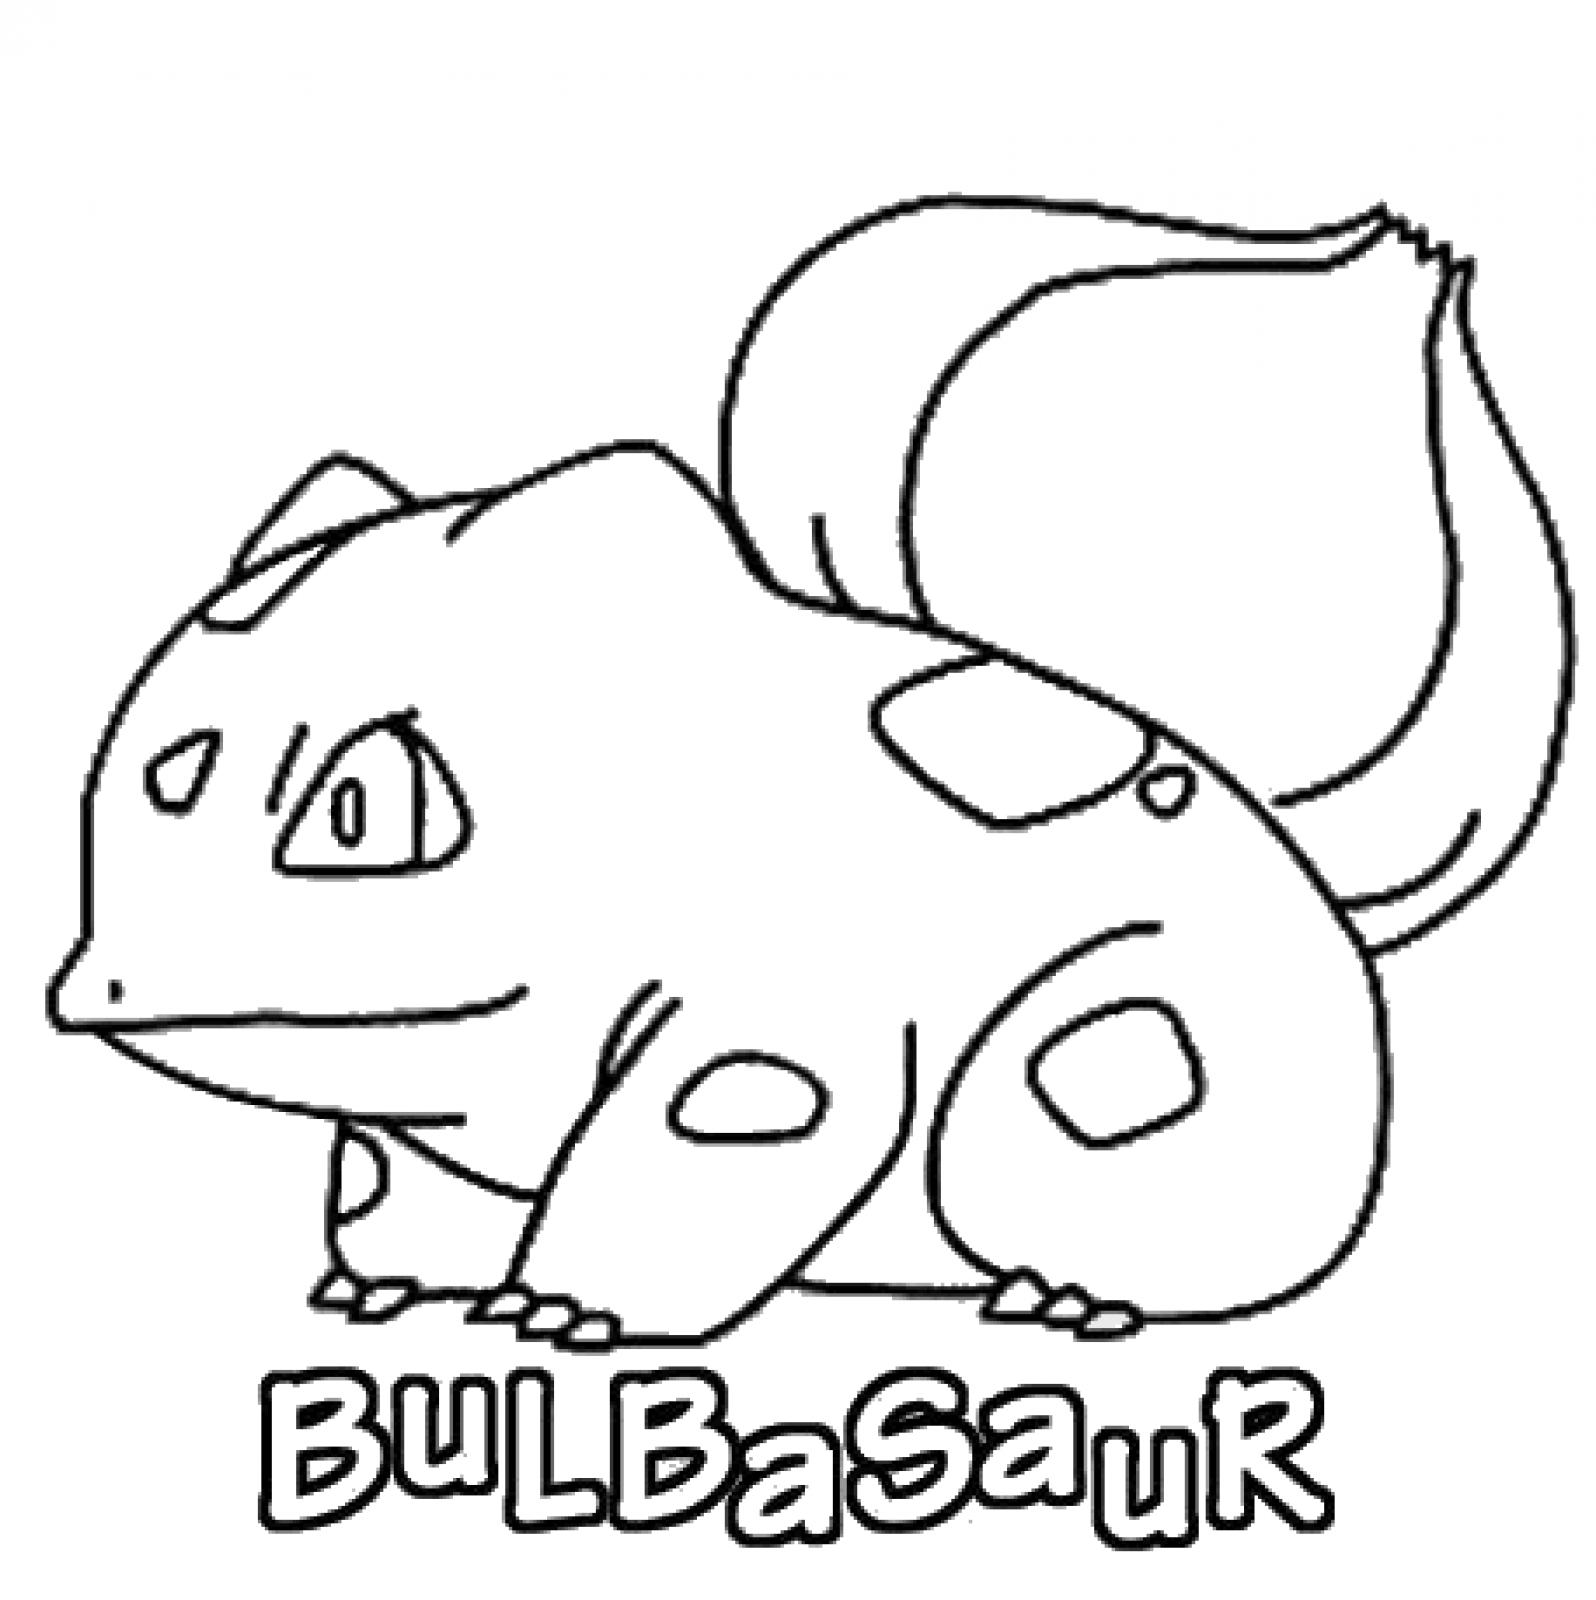 Bulbasaur Coloring Pages - Coloring Home